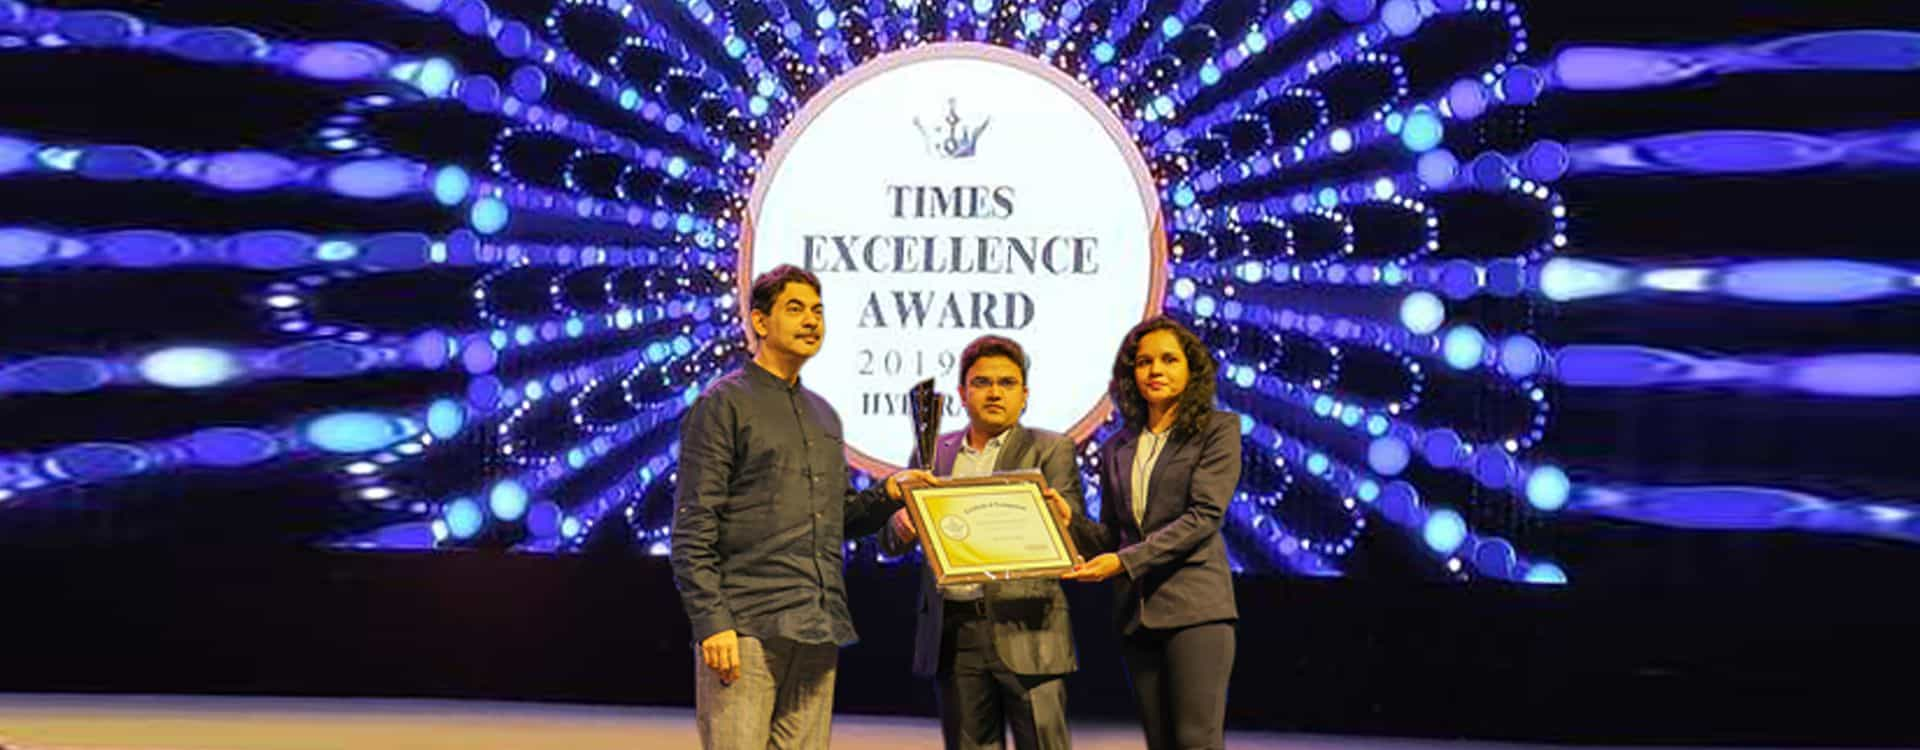 Times Excellence award 2019-2020 for Best Data Science Institute